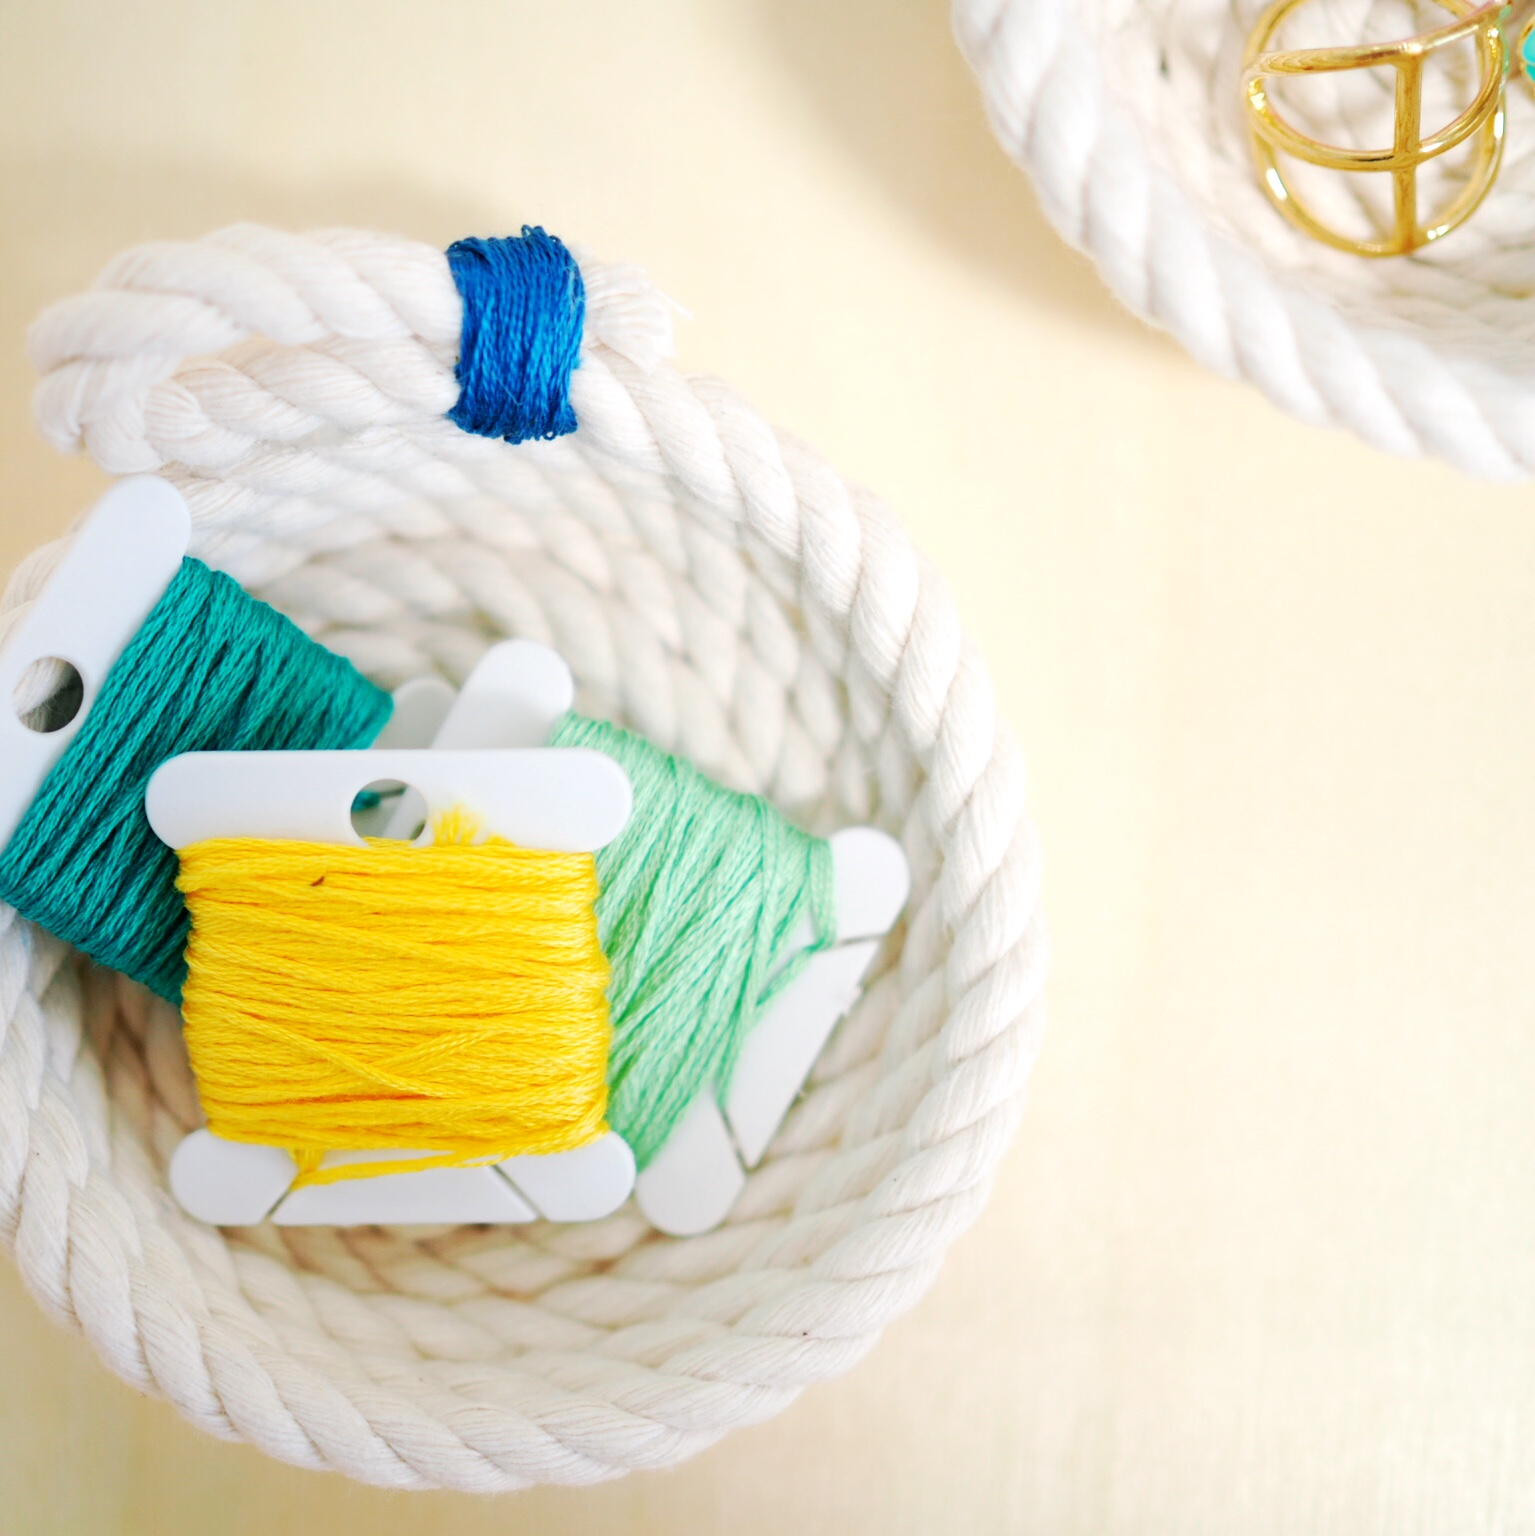 Craft a DIY rope bowl jewelry holder from 5 simple materials you already have at home